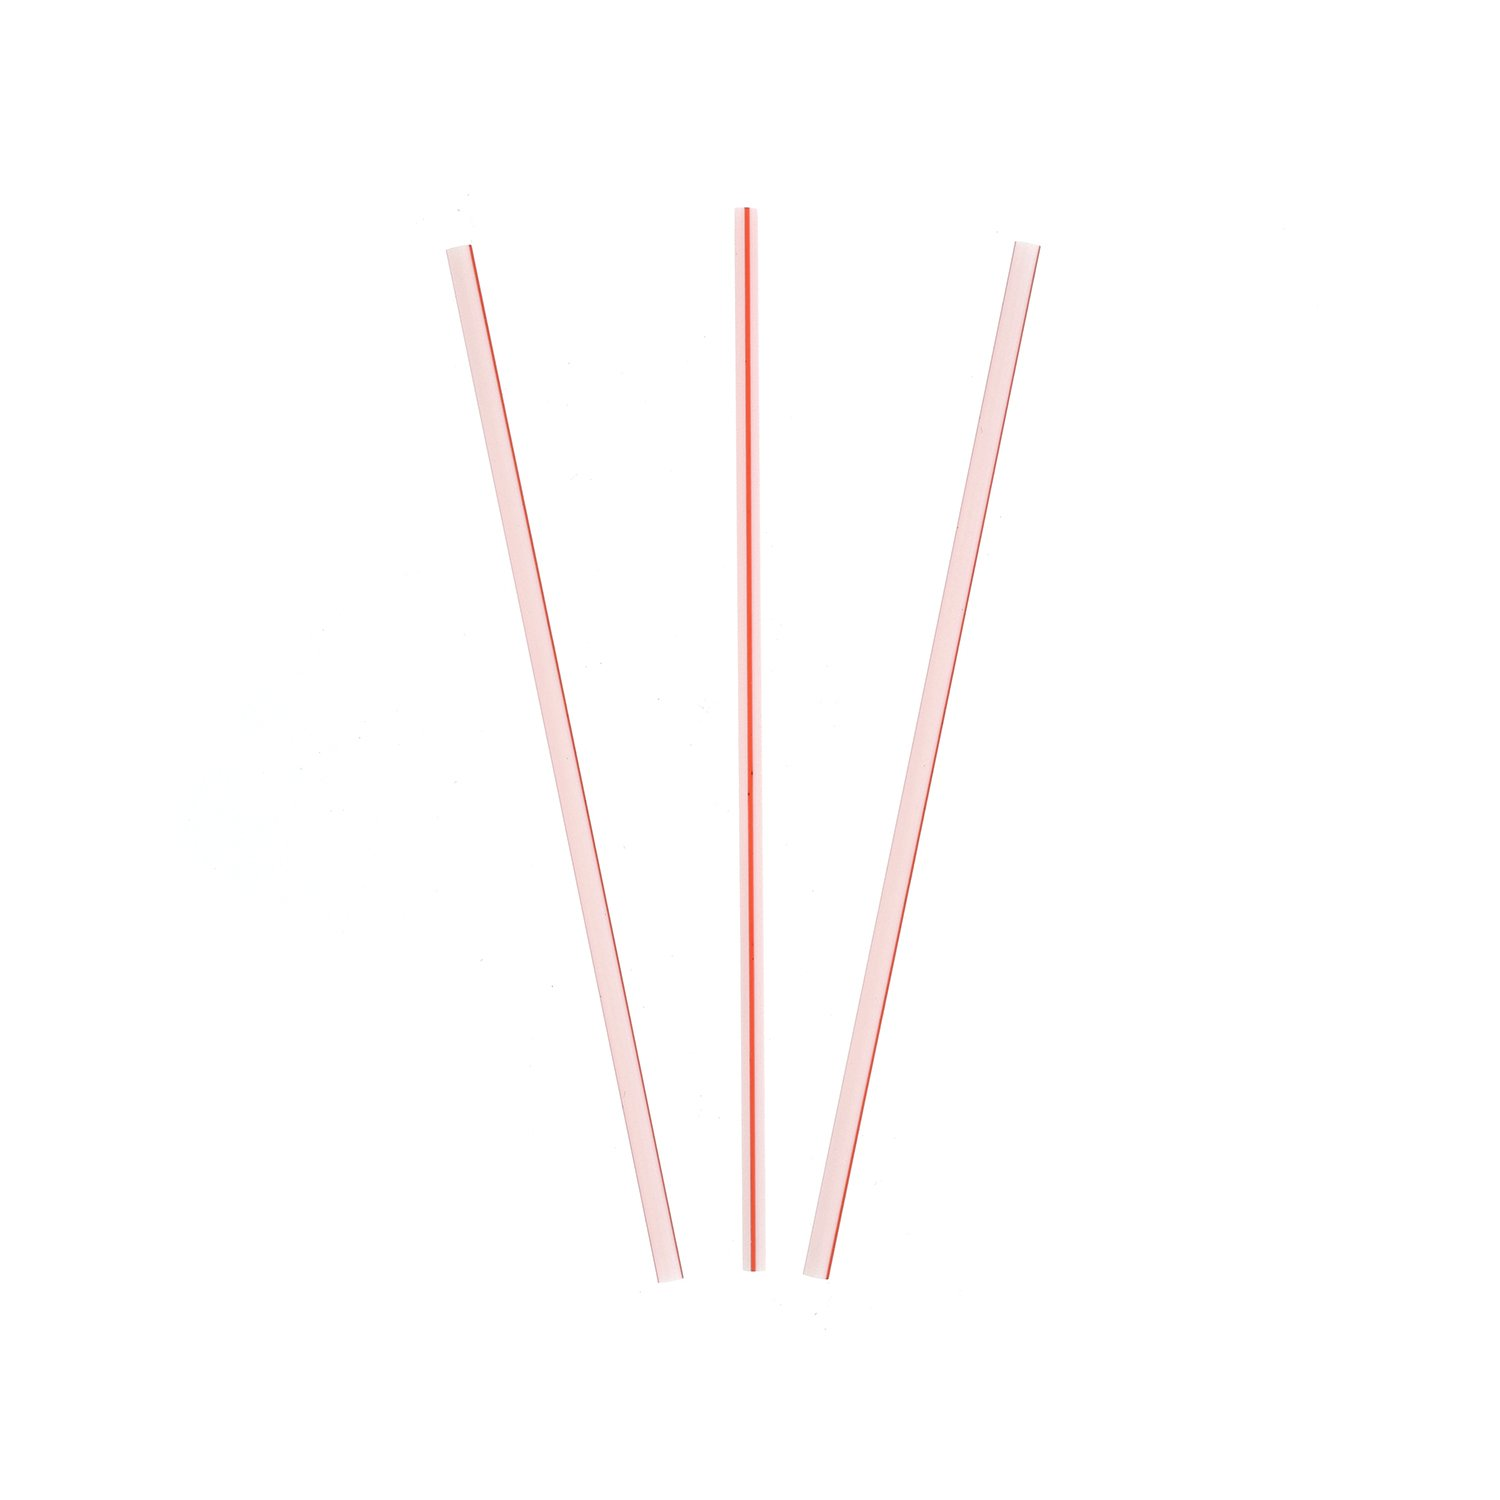 Royal 5'' White with Red Stripe Sip Straw, Case of 10,000